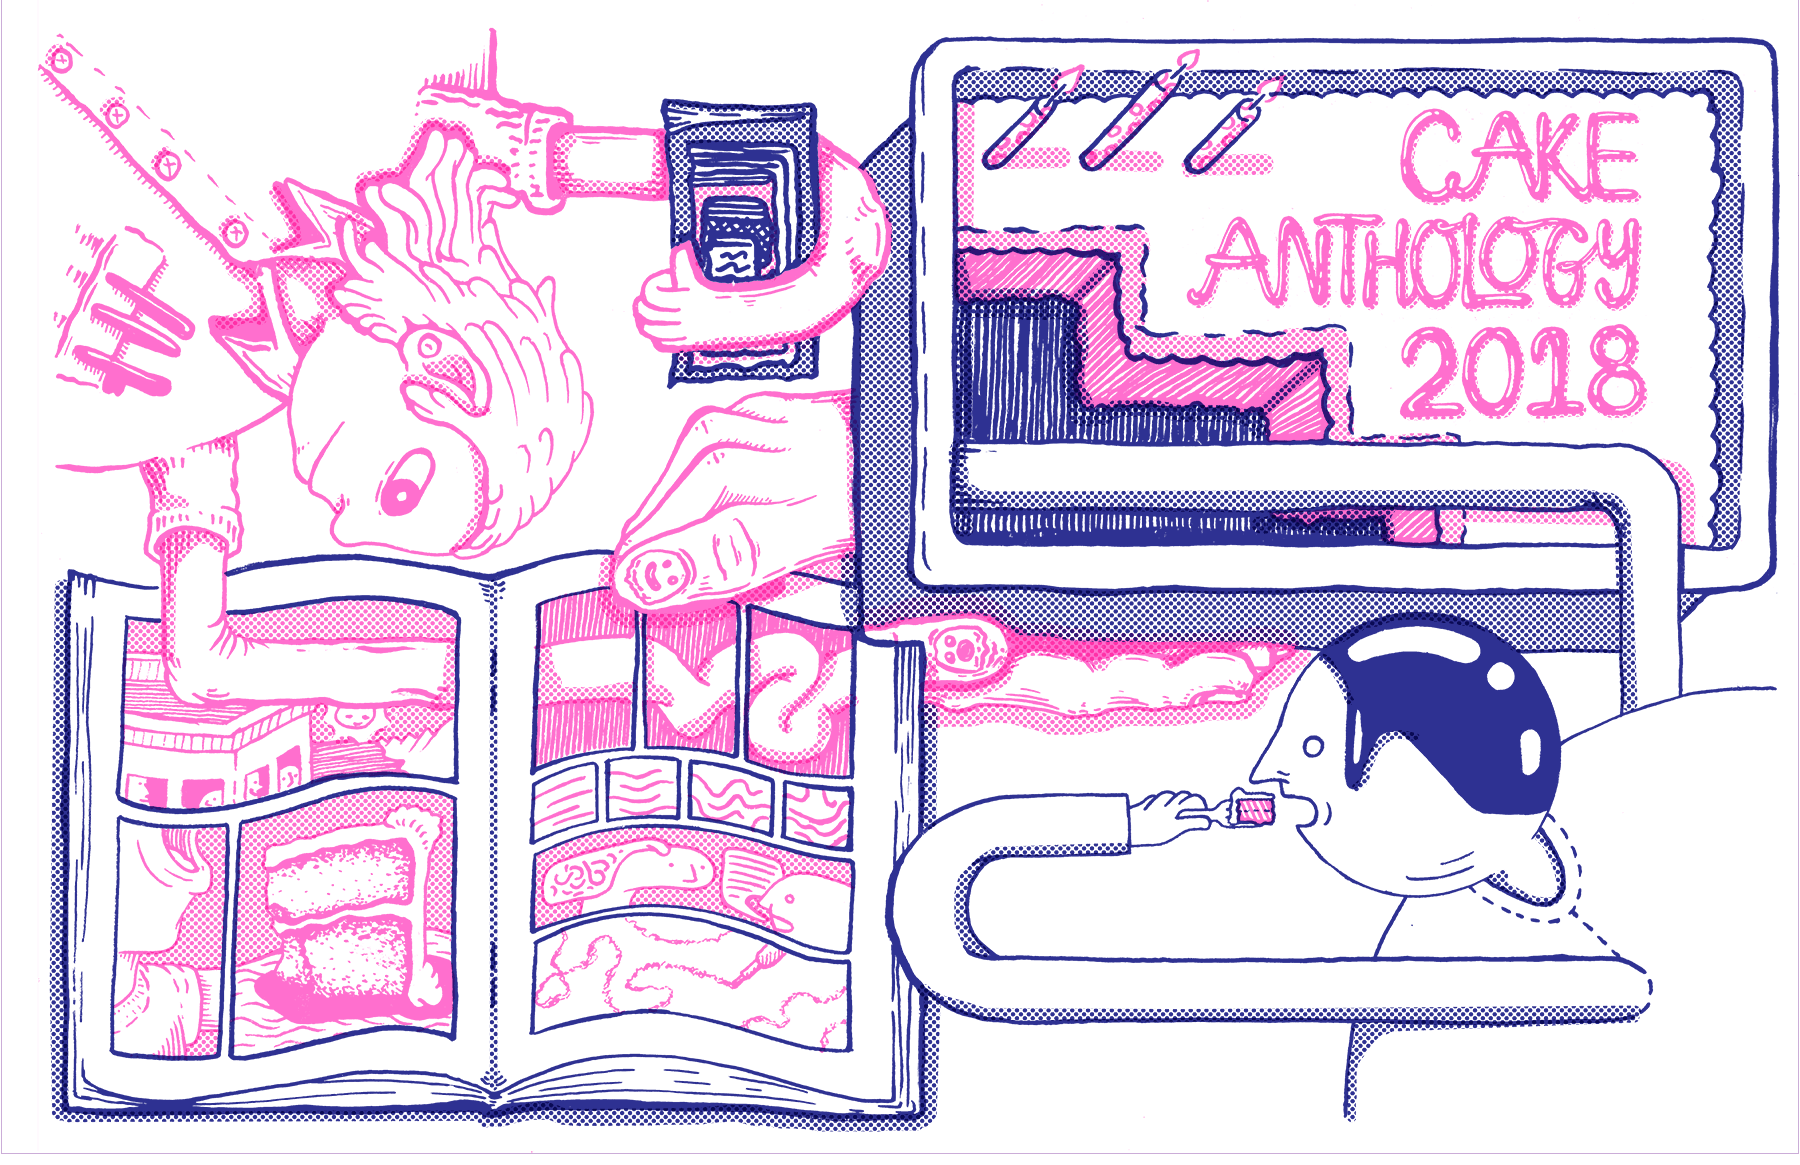 CAKE 2018 Anthology Cover